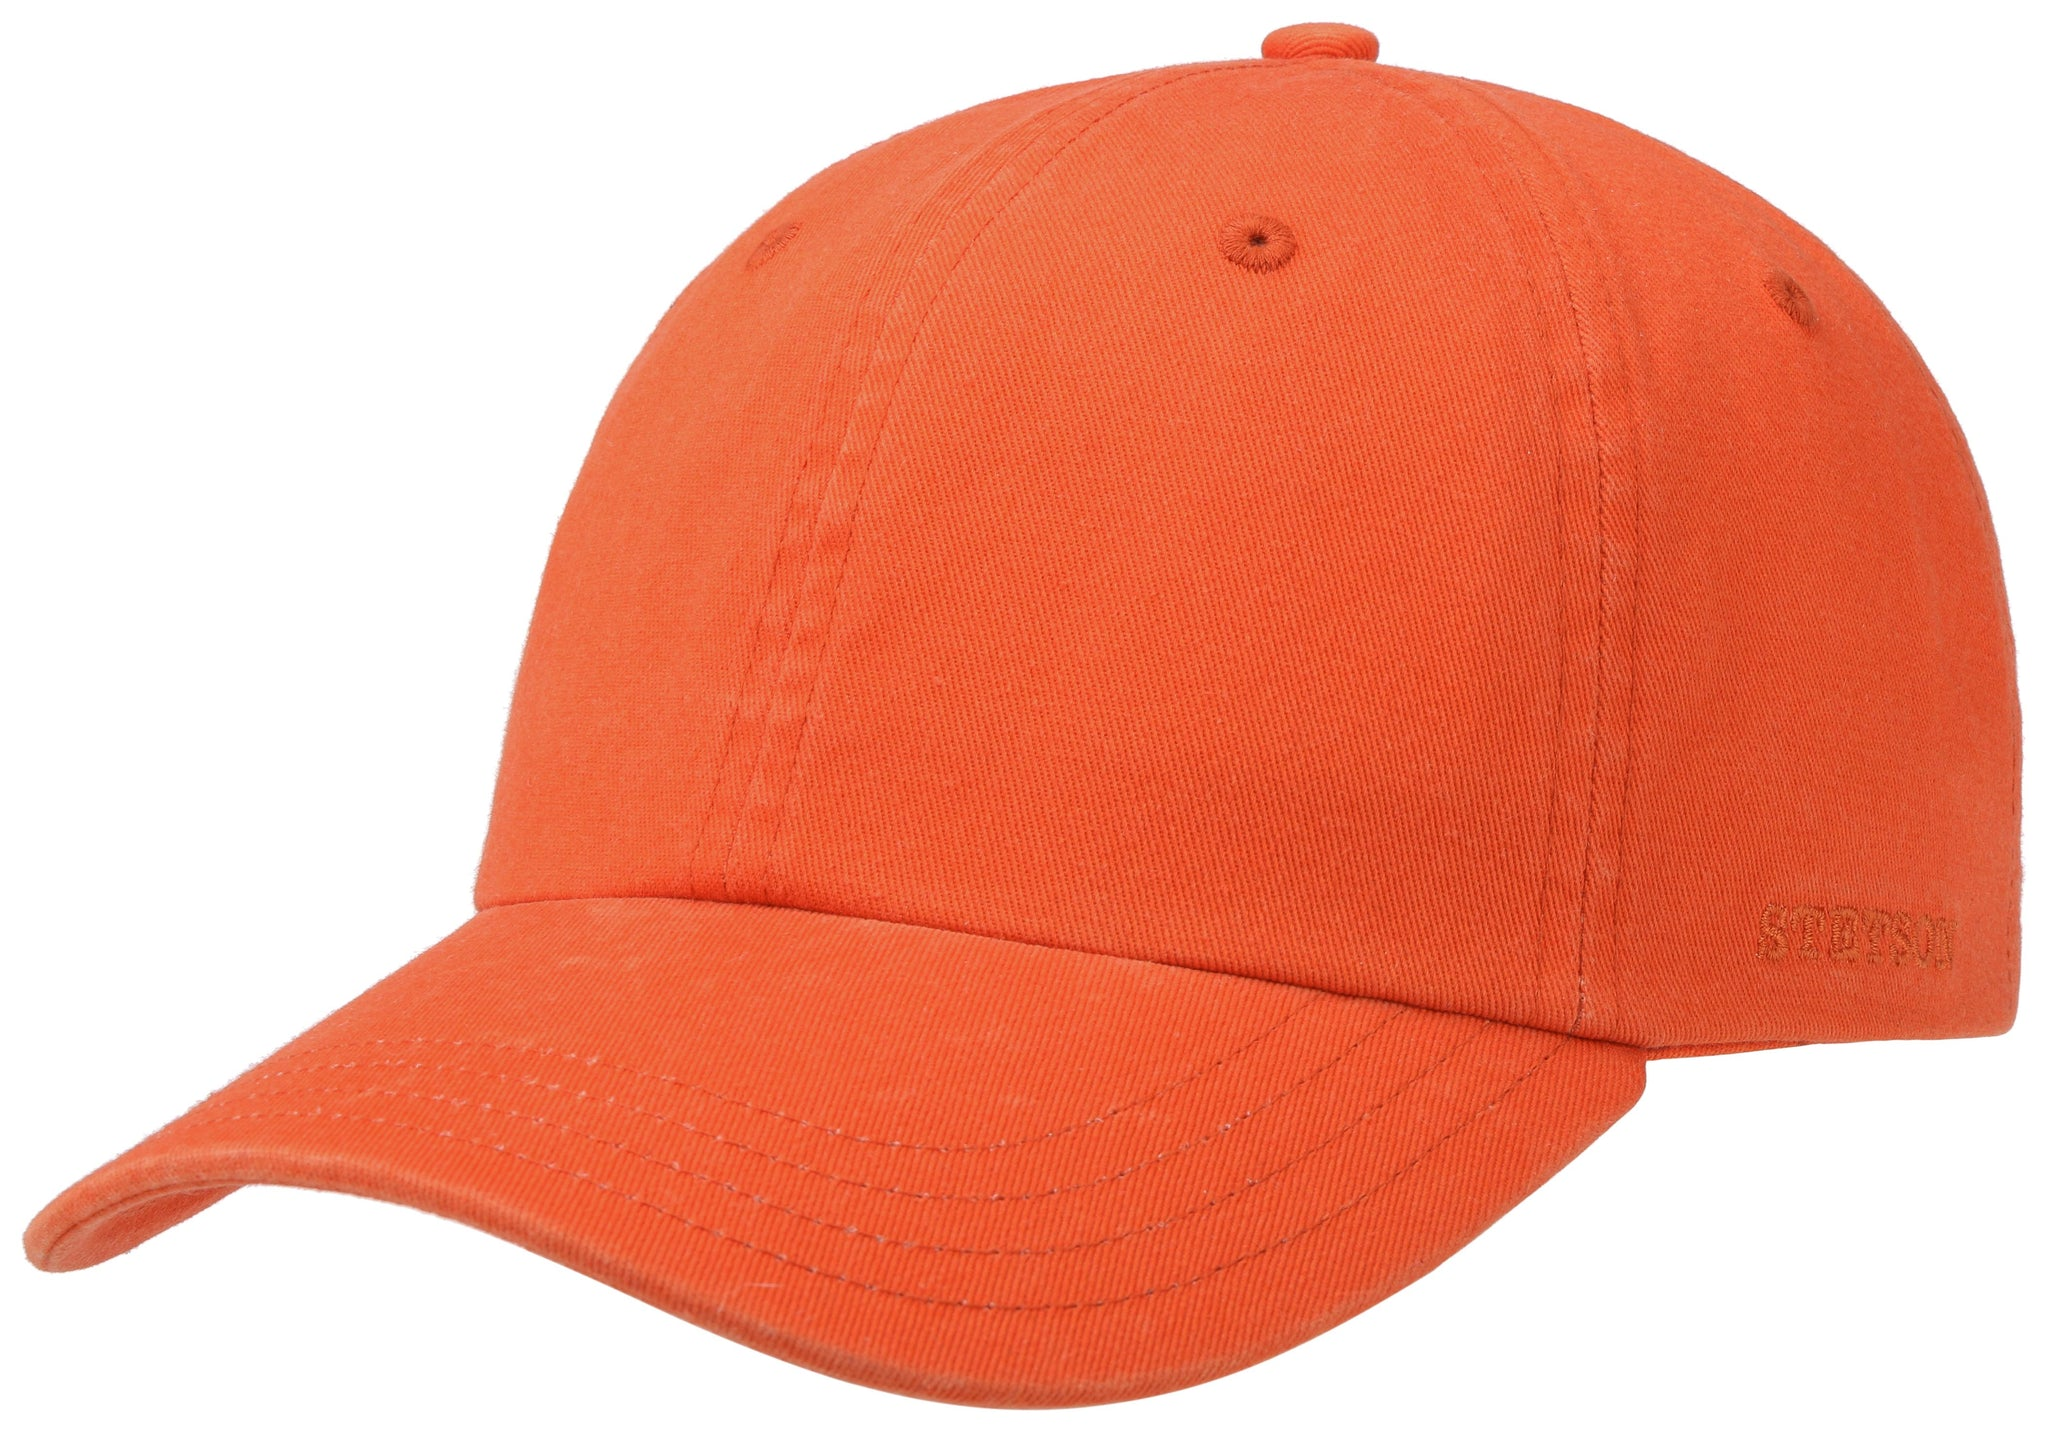 Stetson // 7711101 Cap - Orange